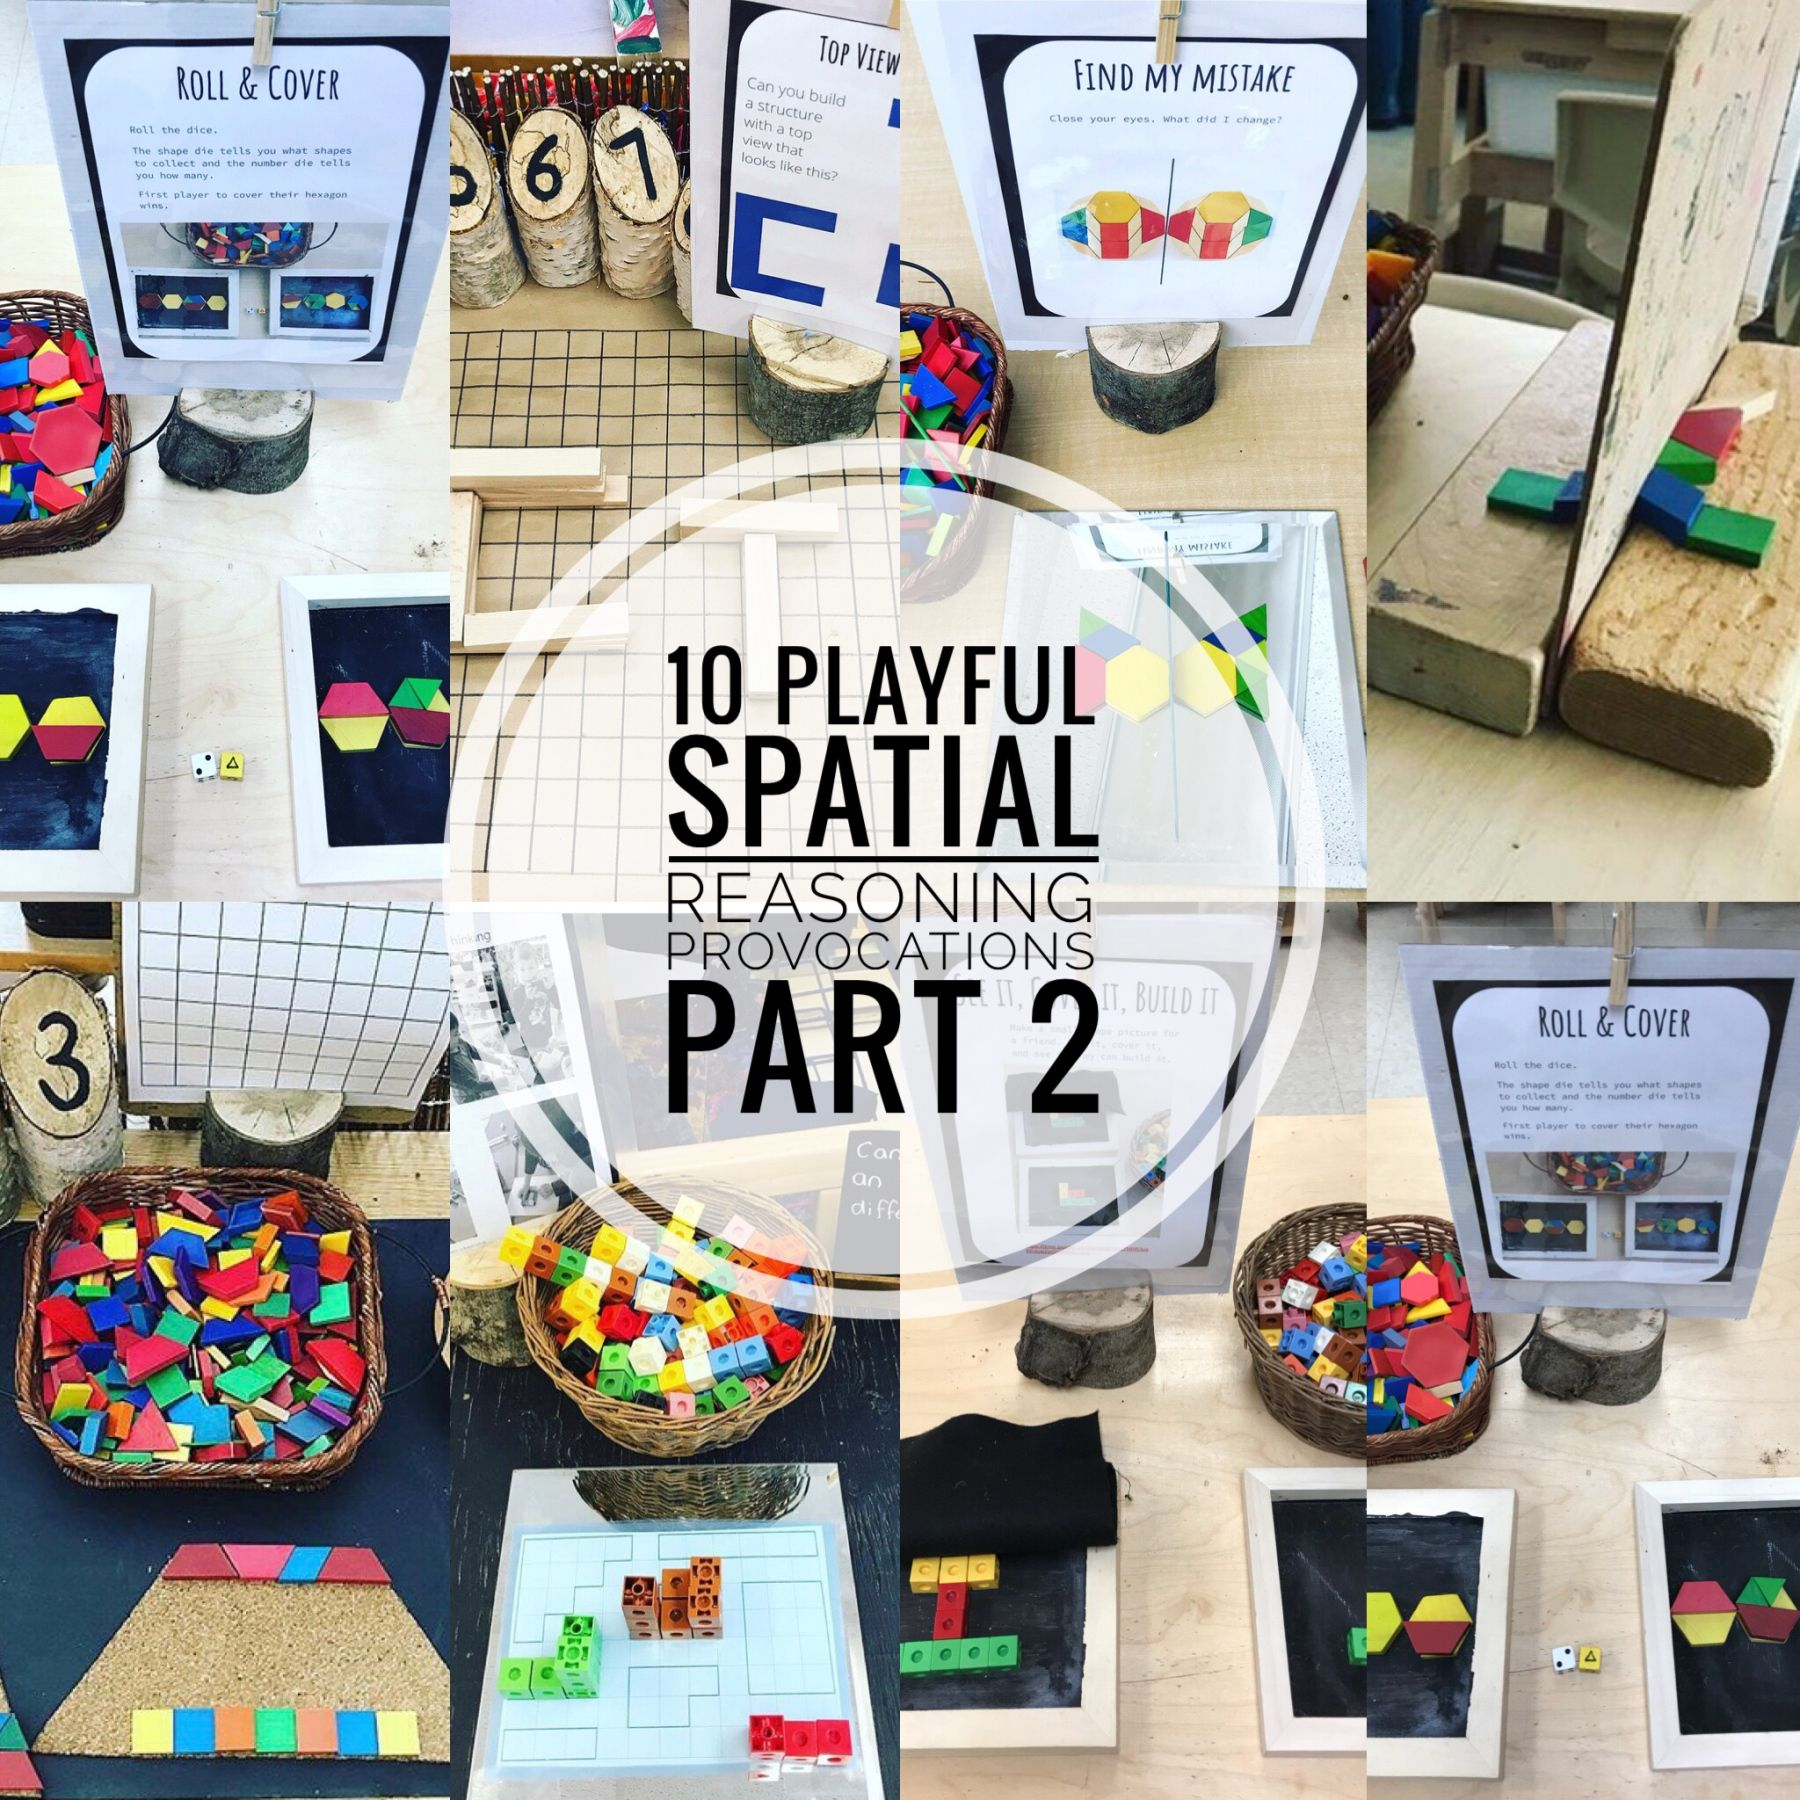 10 Playful Spatial Reasoning Provocations Part 2